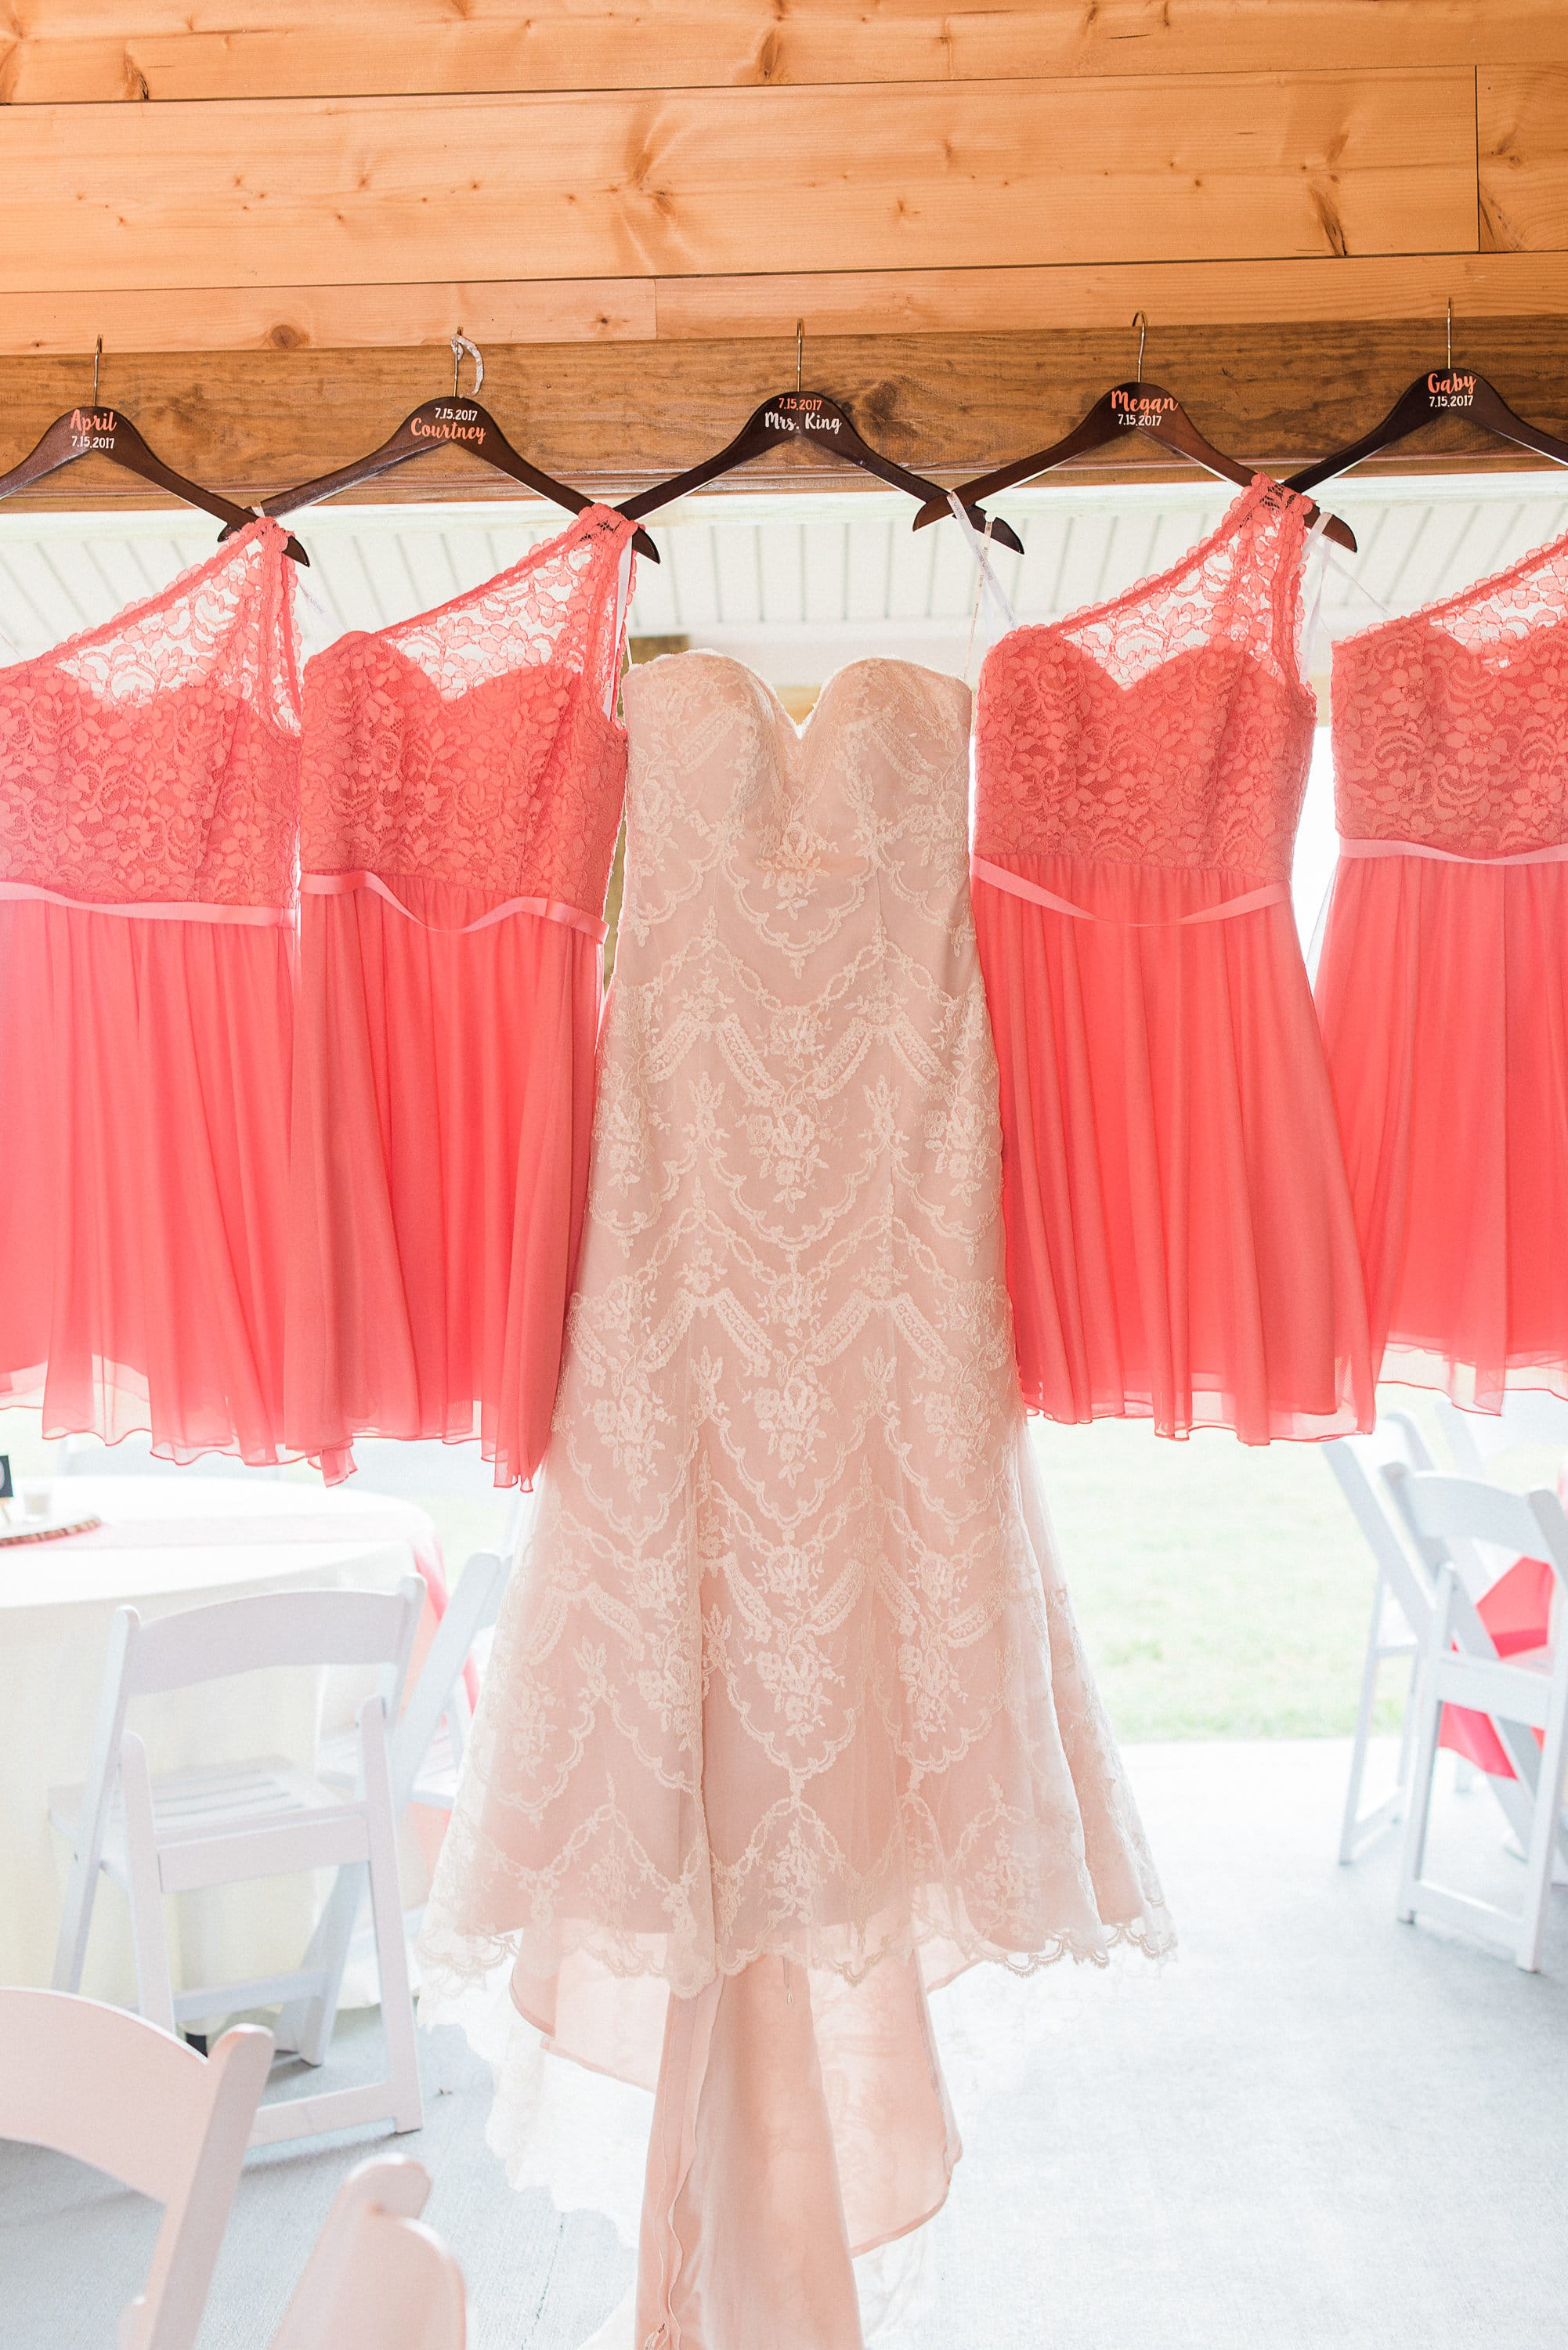 Blush Lace Wedding Dress in Classic + Colorful Nuptials. Kirstie blush wedding dress by Maggie Sottero.